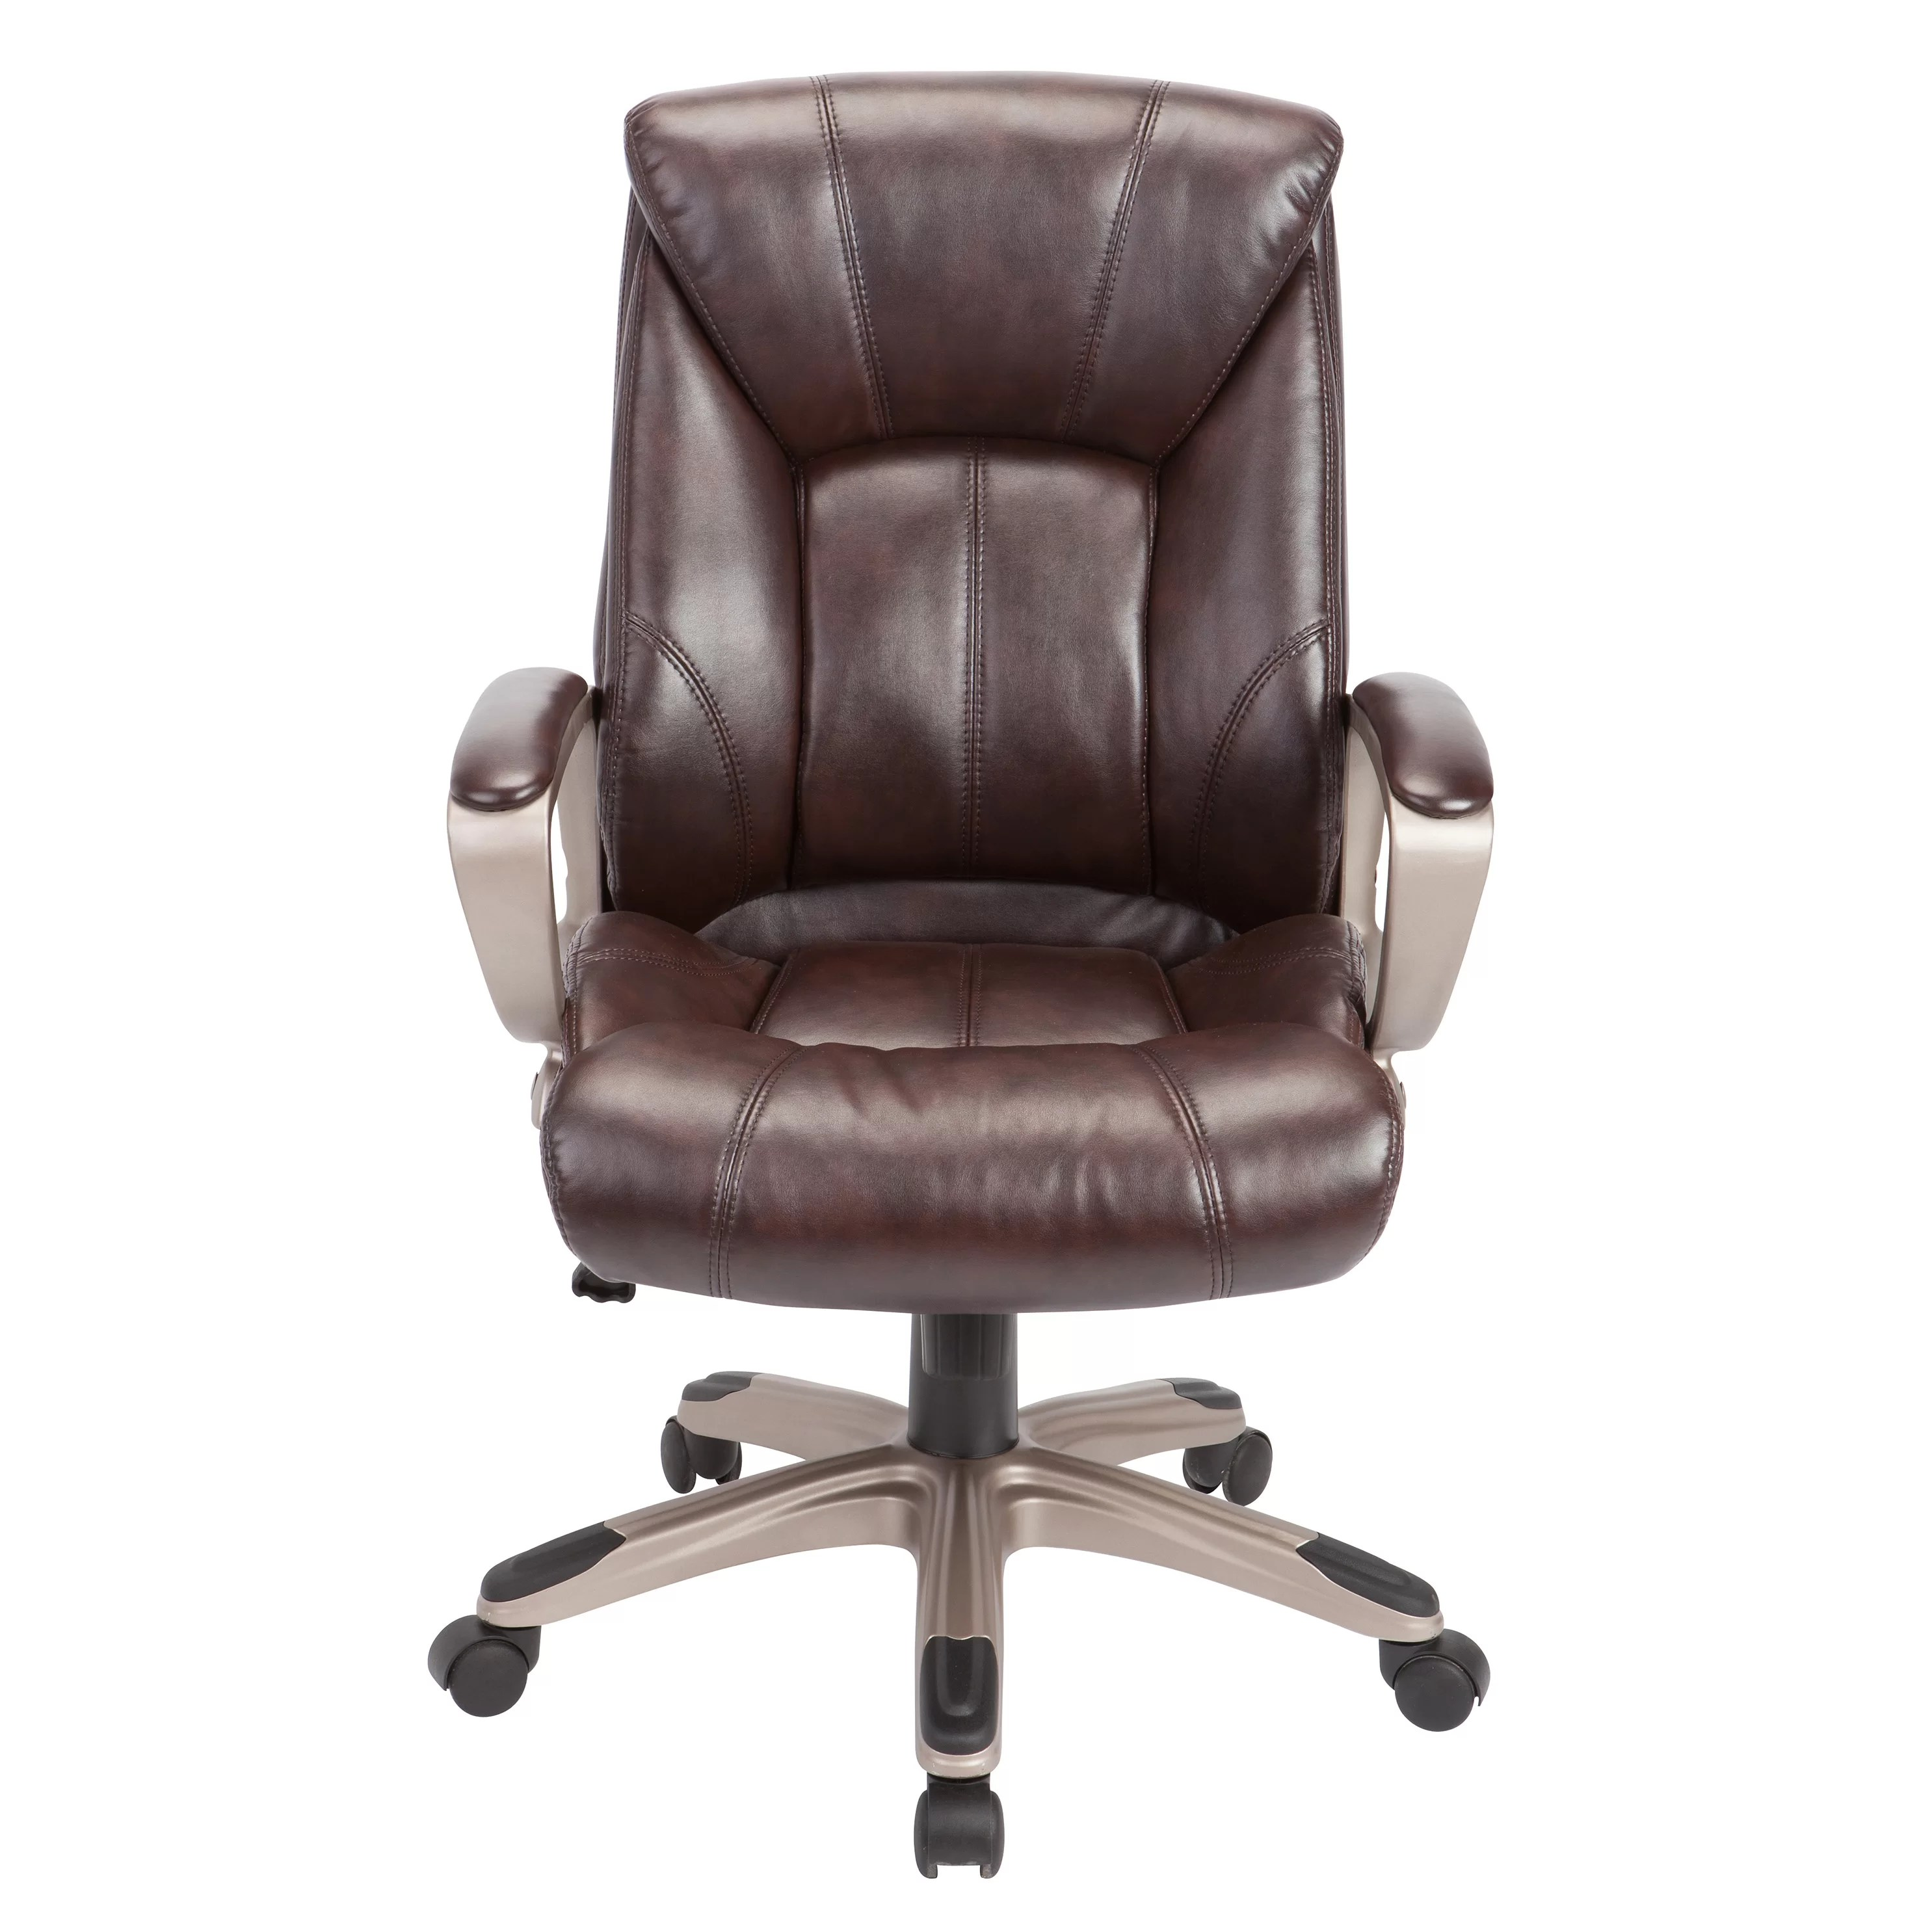 office chair reviews best computer gaming chairs ac pacific high back executive and